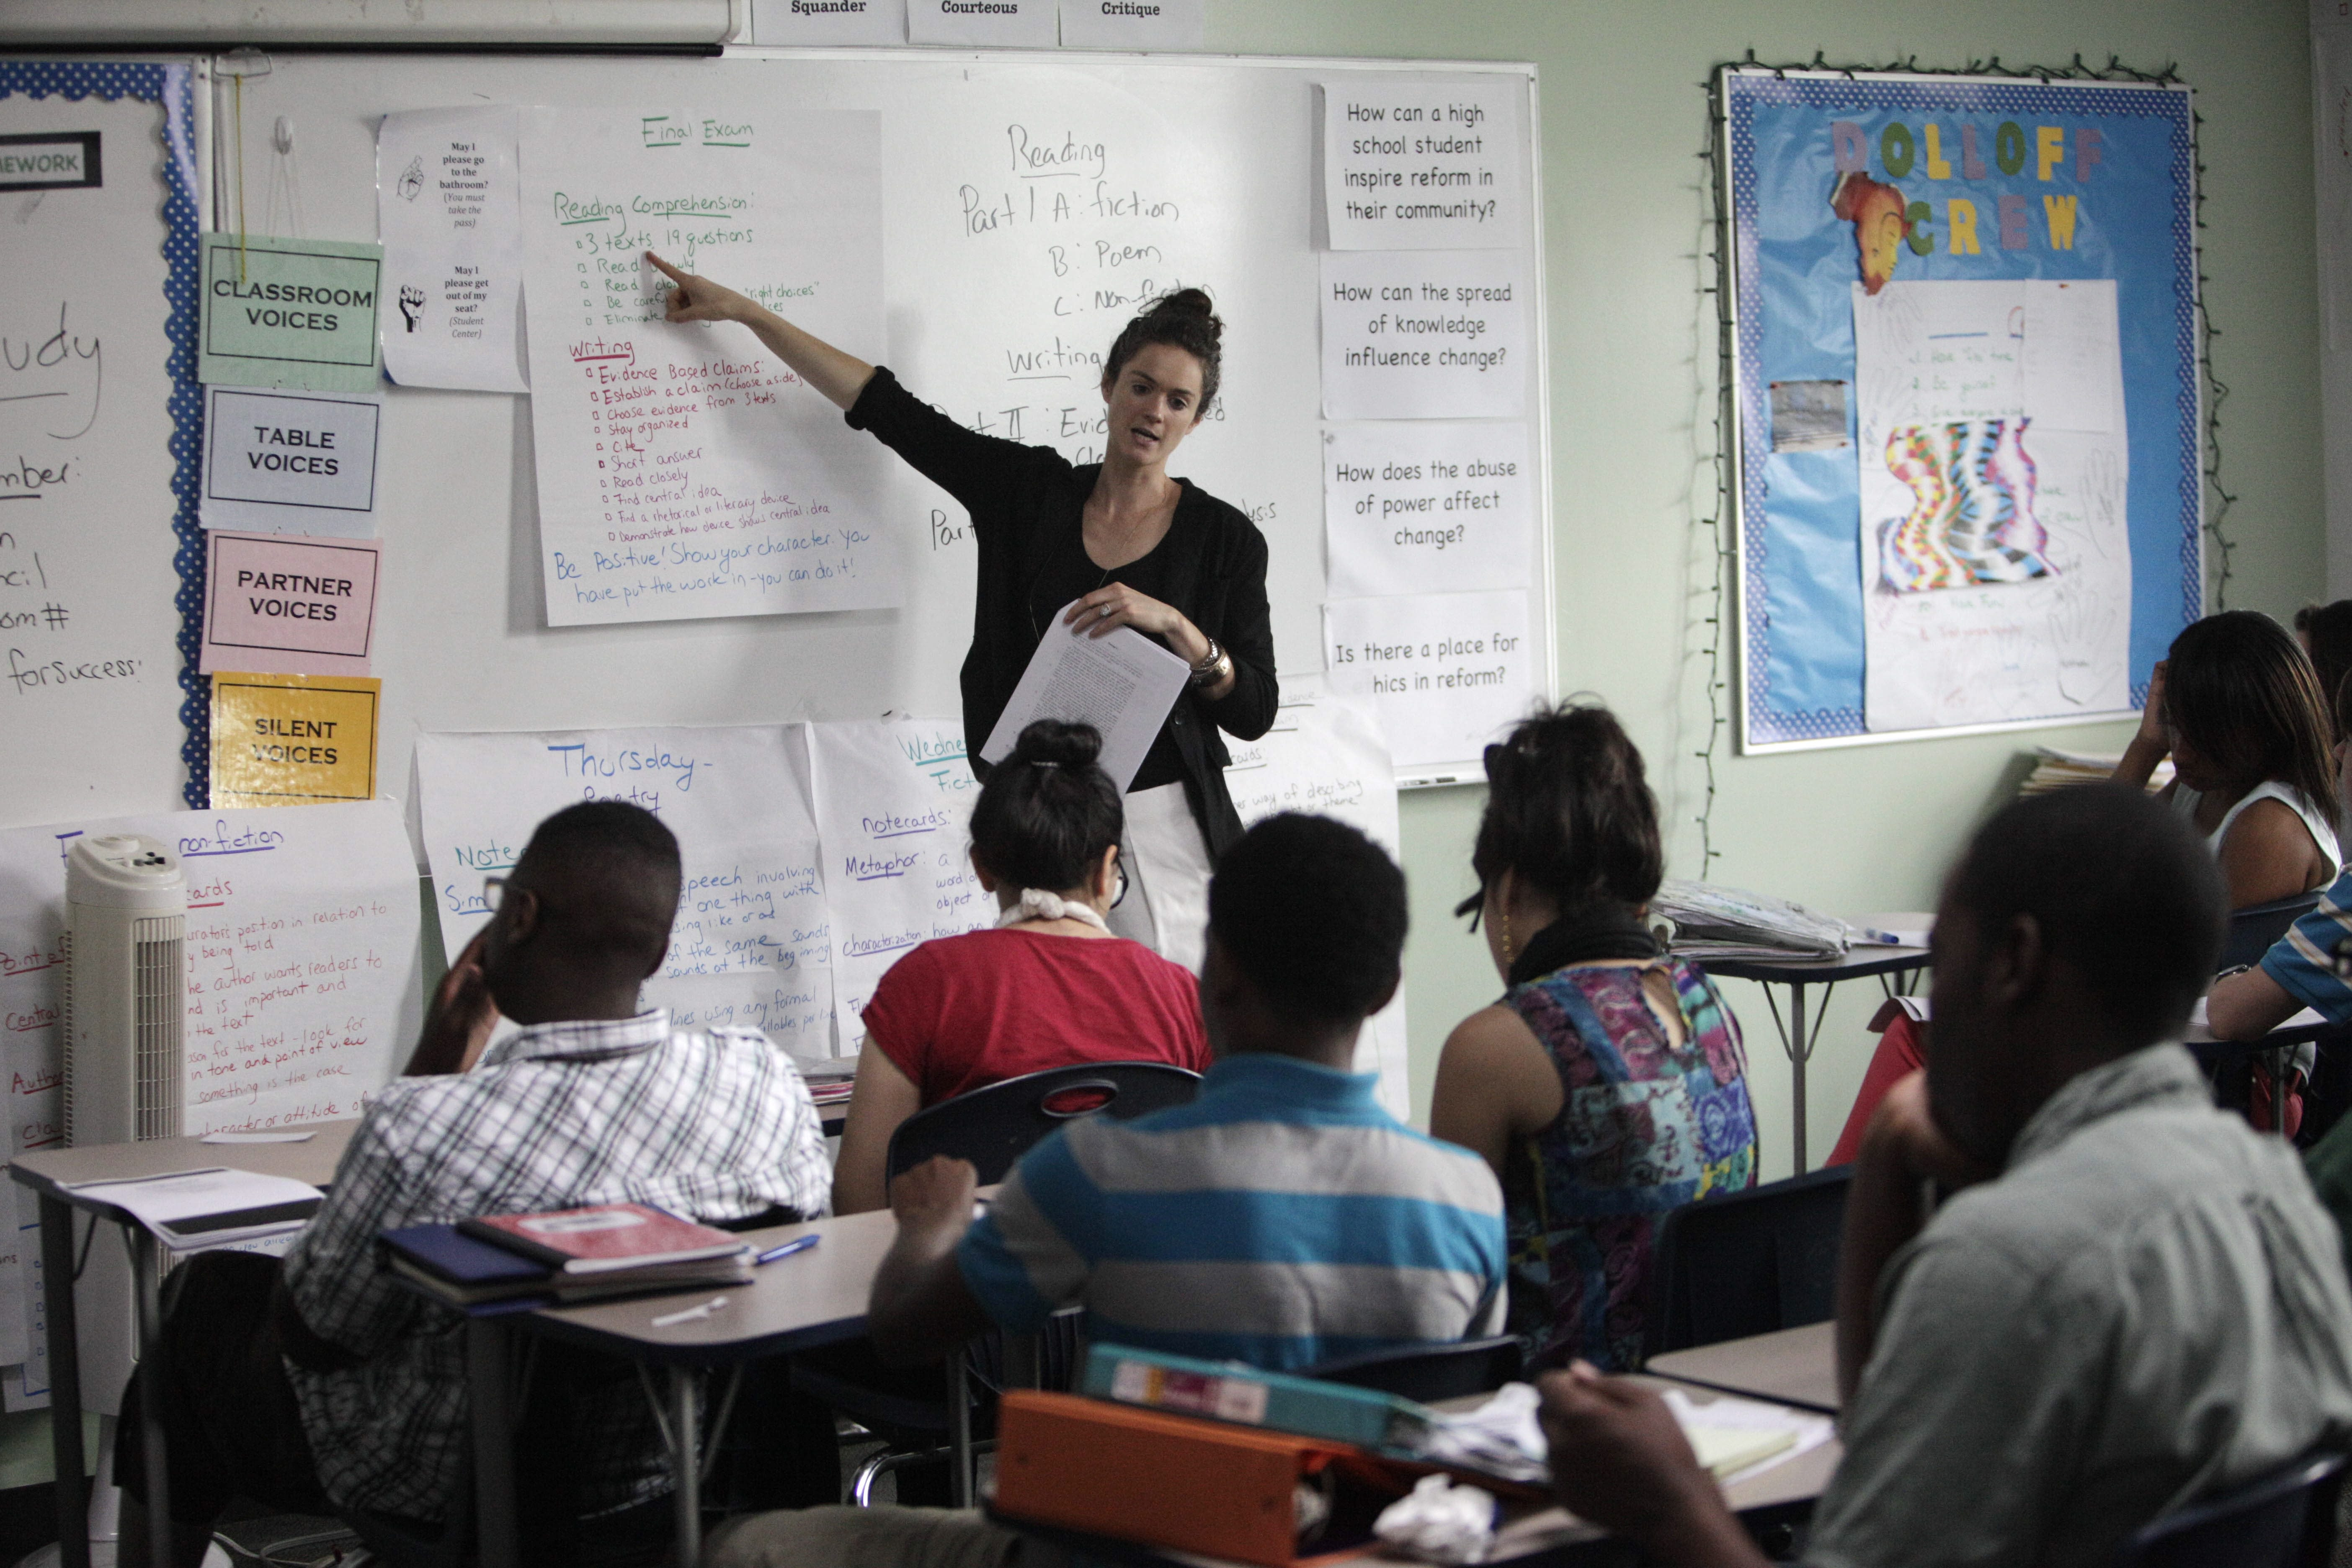 Tapestry Charter School graduates 93 percent of its students on time. Here, English teacher Sara Dolloff goes over the format of the final exam with her class at Tapestry.